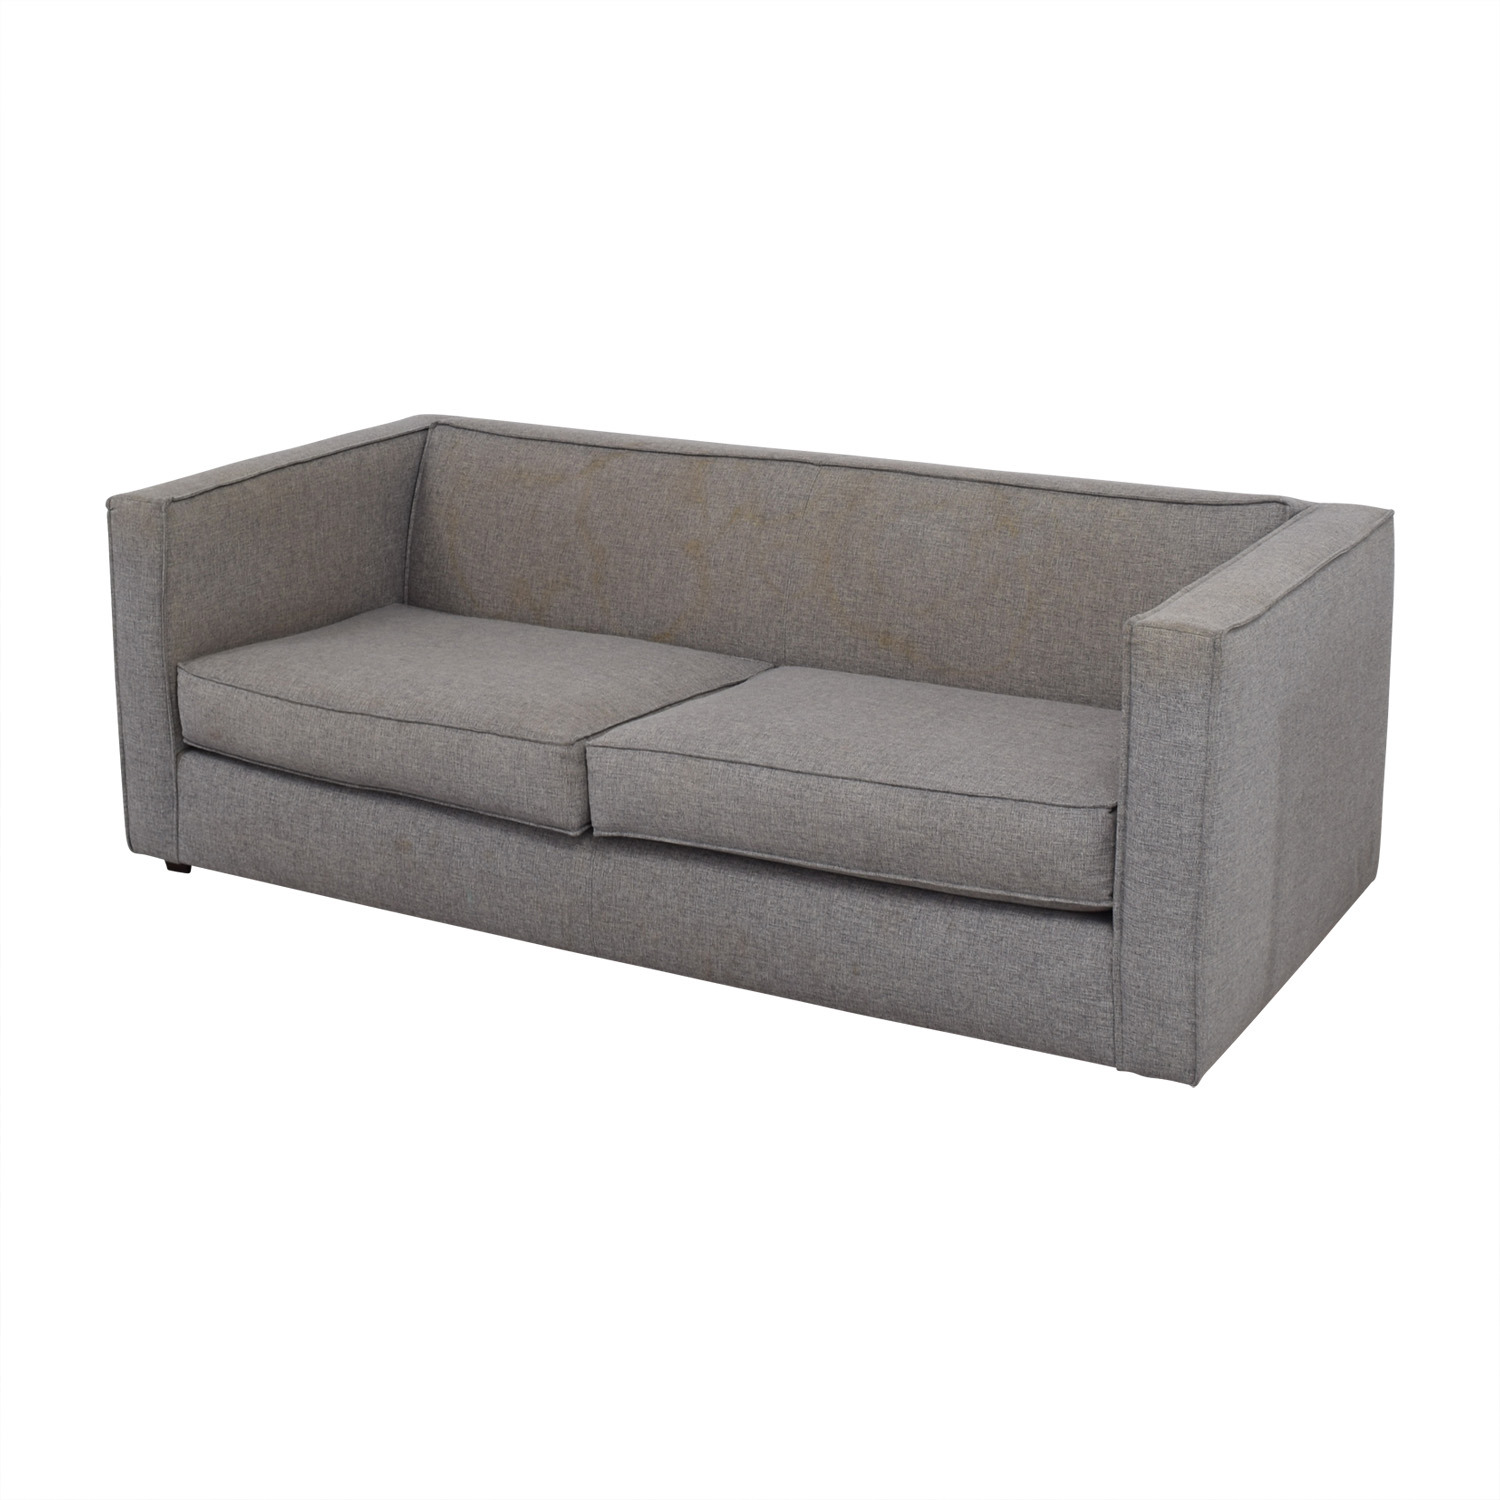 CB2 CB2 Club Grey Two-Cushion Sofa Sofas